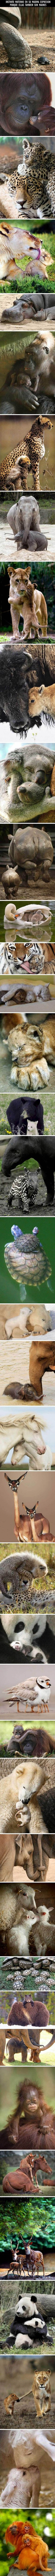 best adorable images on pinterest fluffy animals adorable